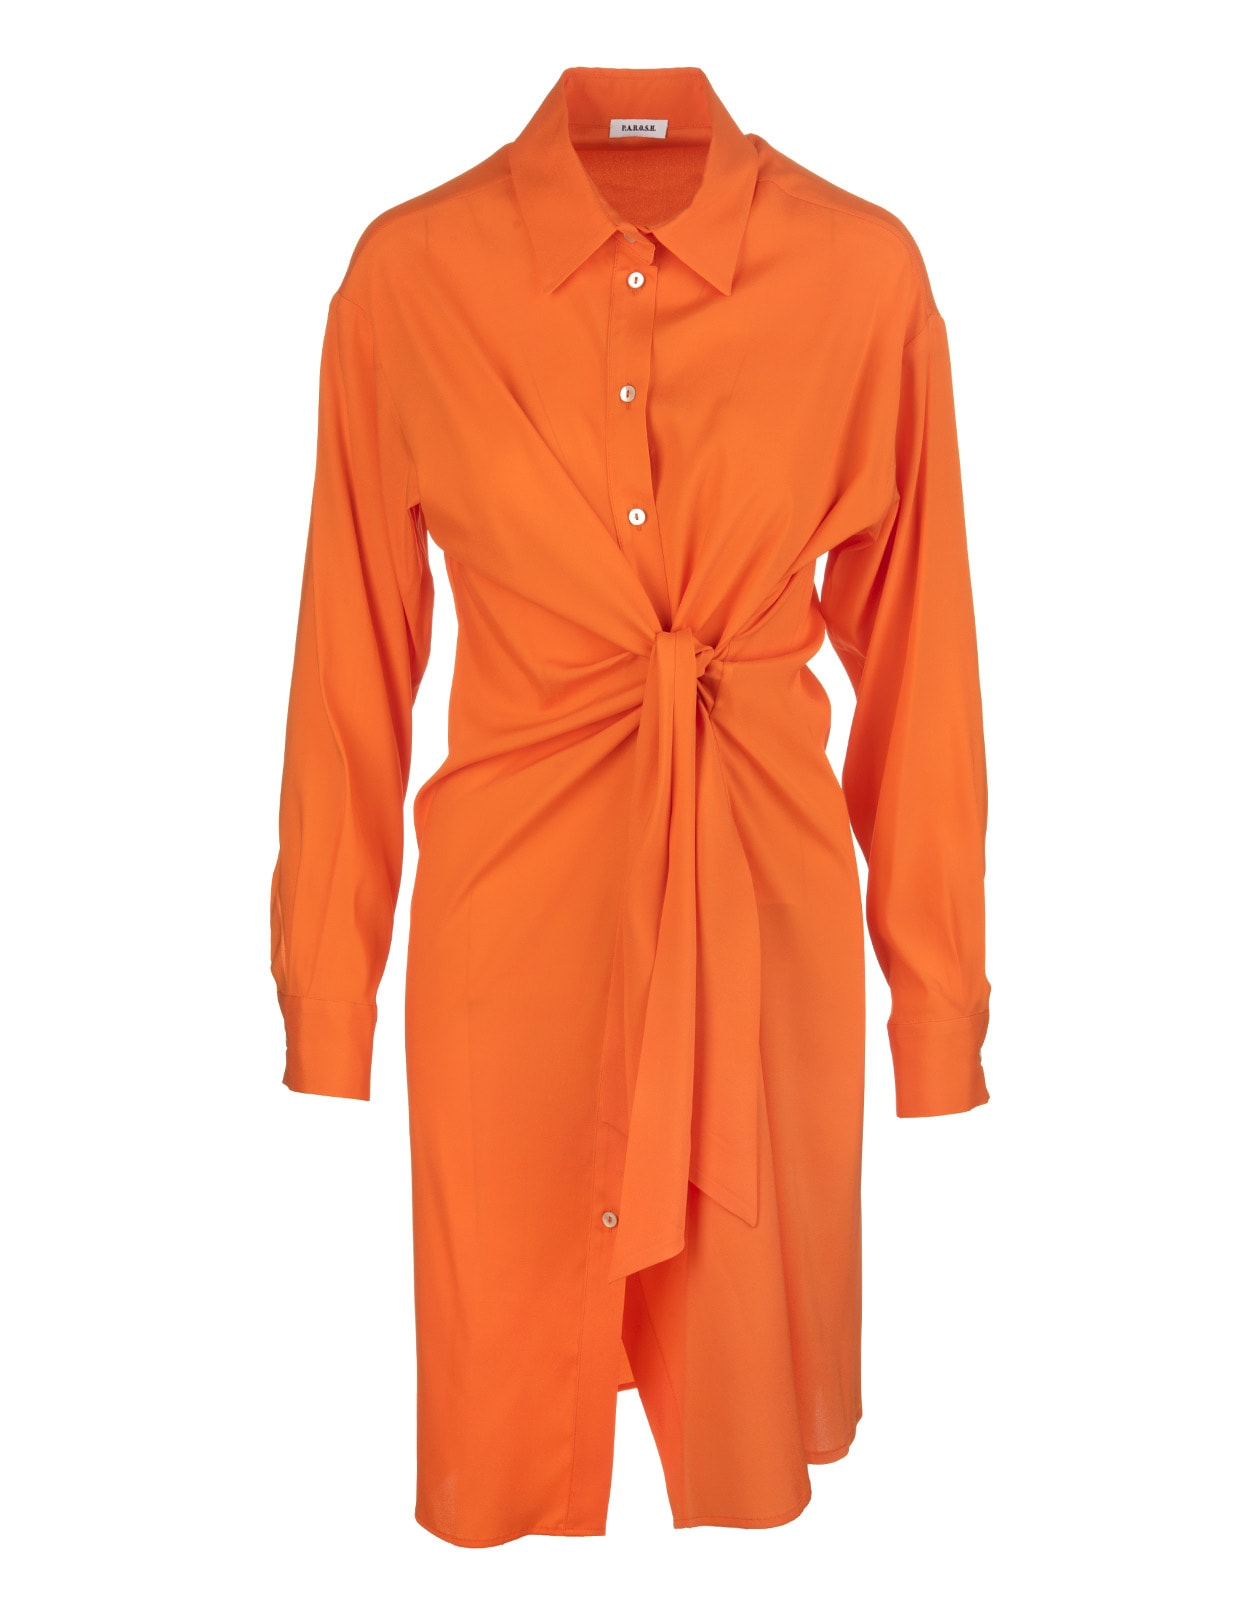 Chemisier dress by A.R.O.H. in orange silk blend with classic collar, front buttoning, long sleeves, cuffs with button, belt with front knot, medium length and soft fit. Composition: 93% Silk, 7% Elastane